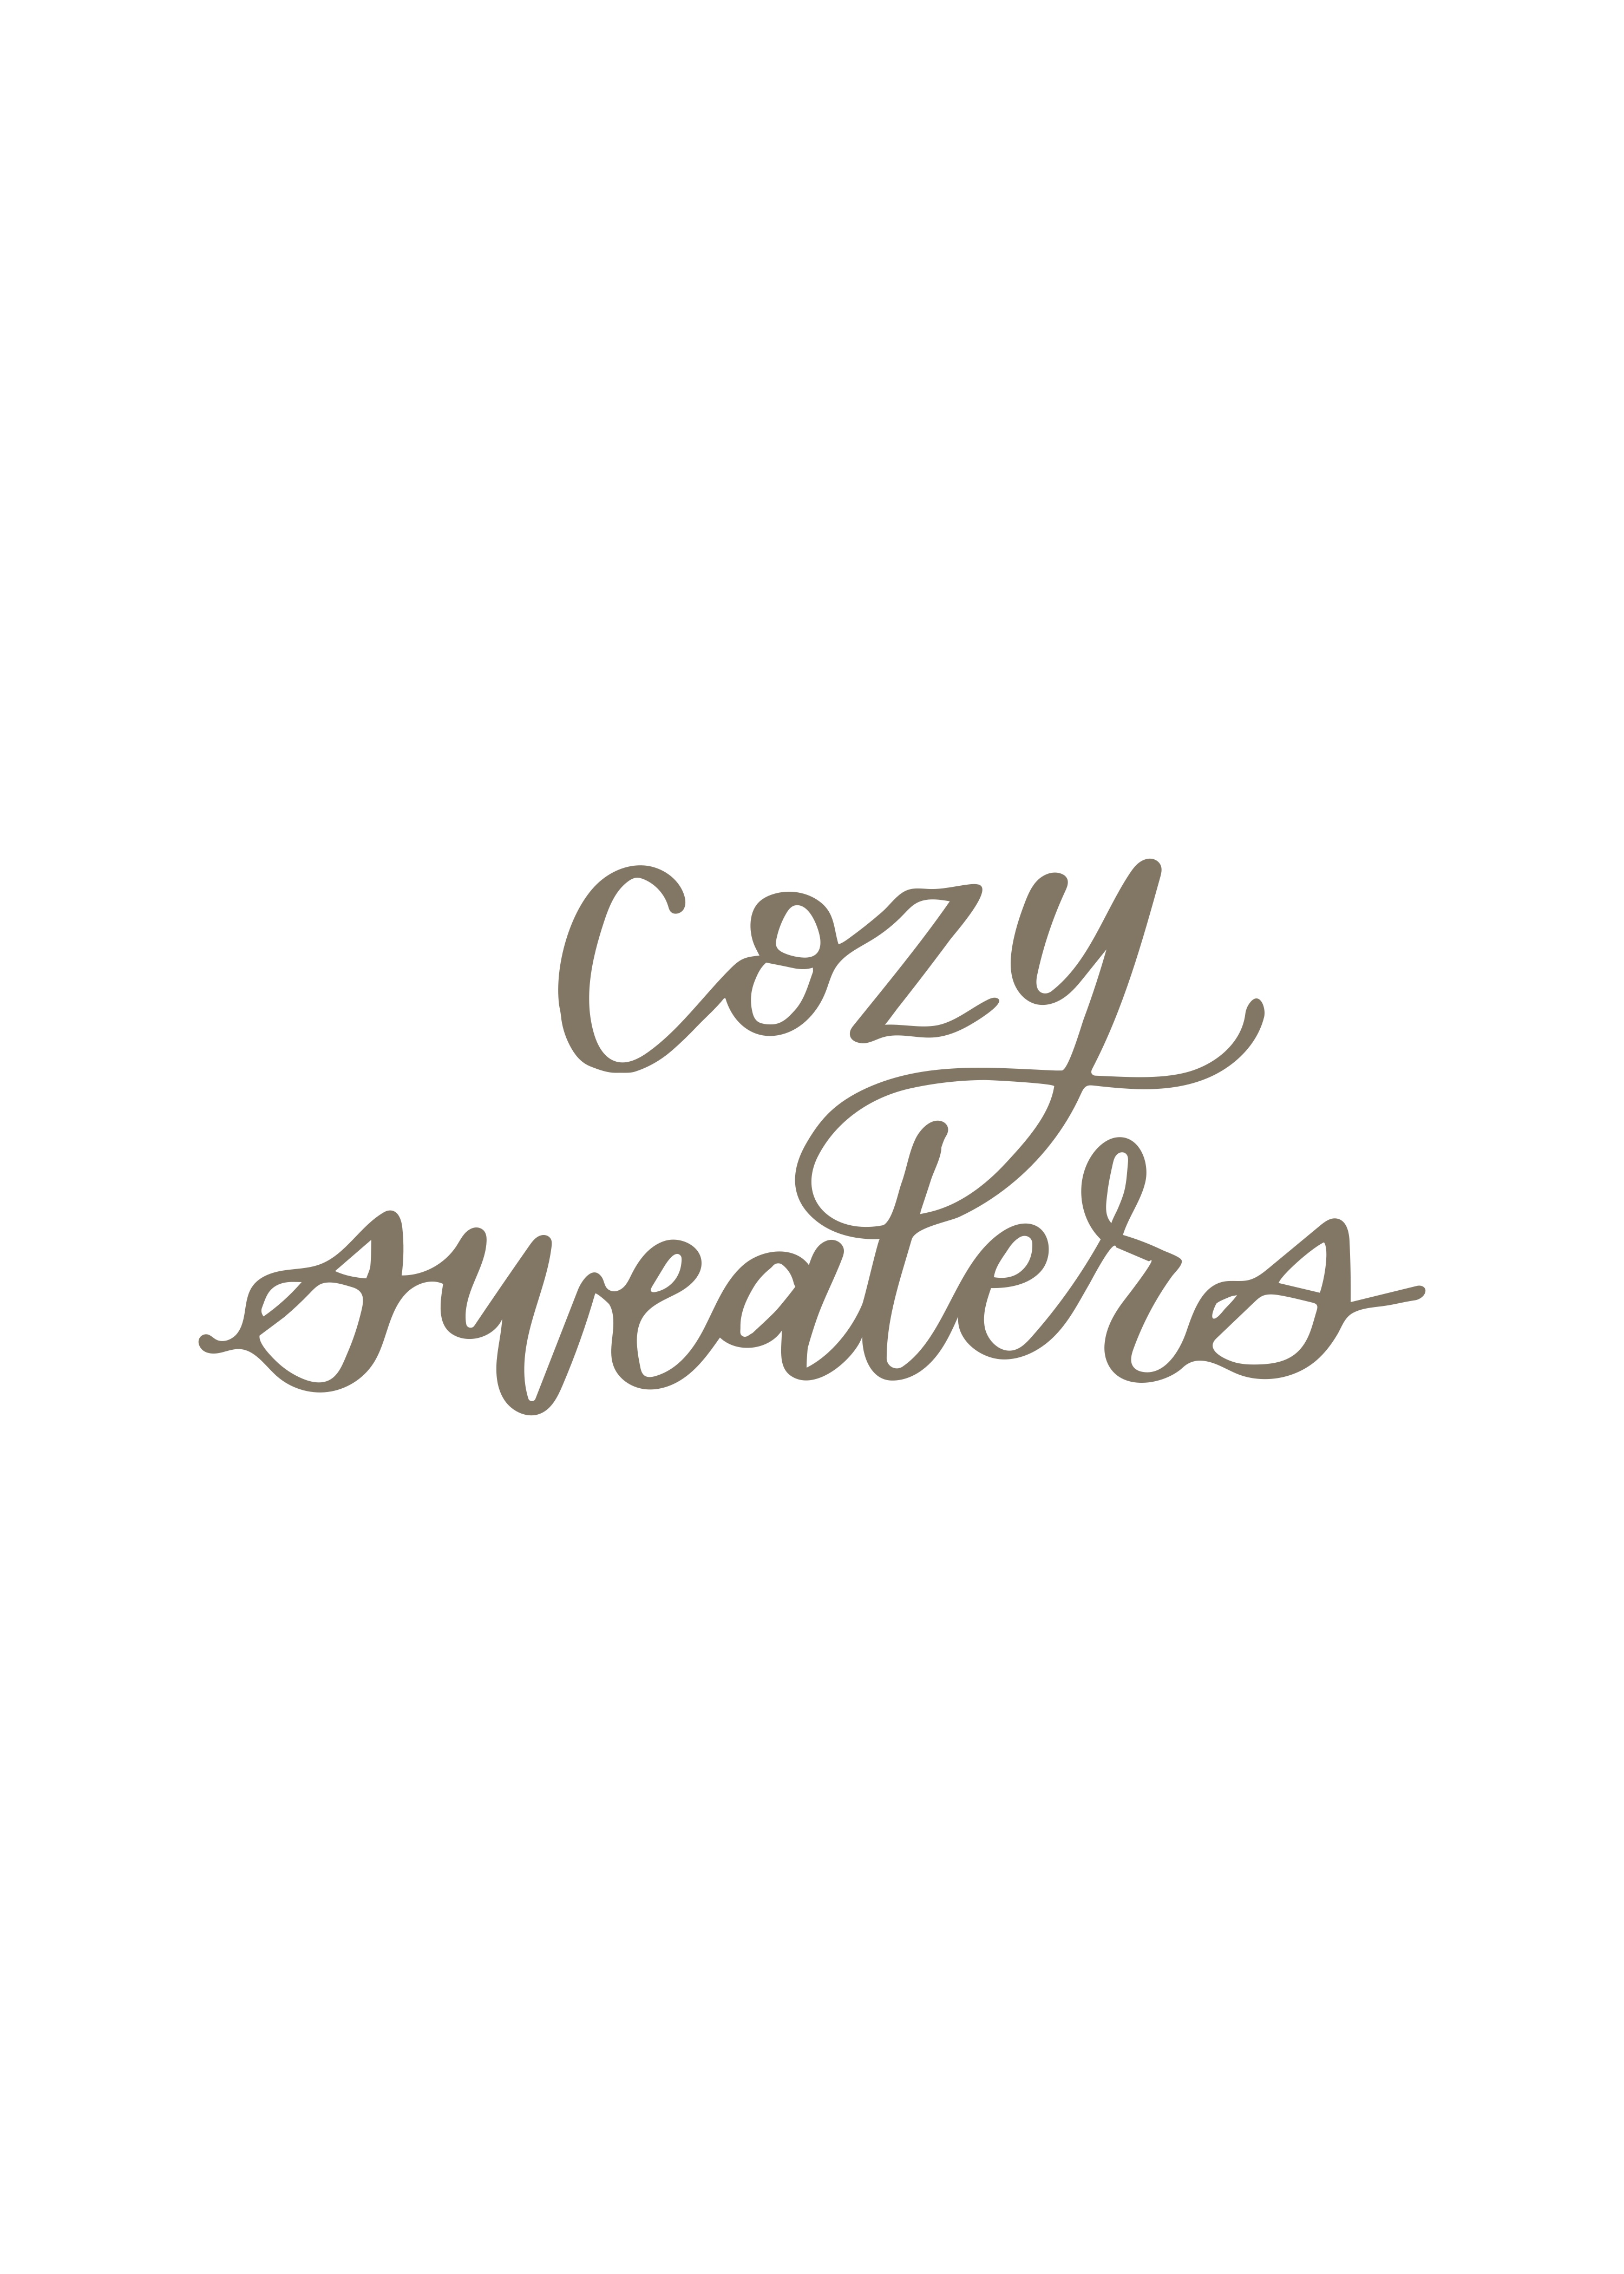 """cozy sweaters"" calligraphy"